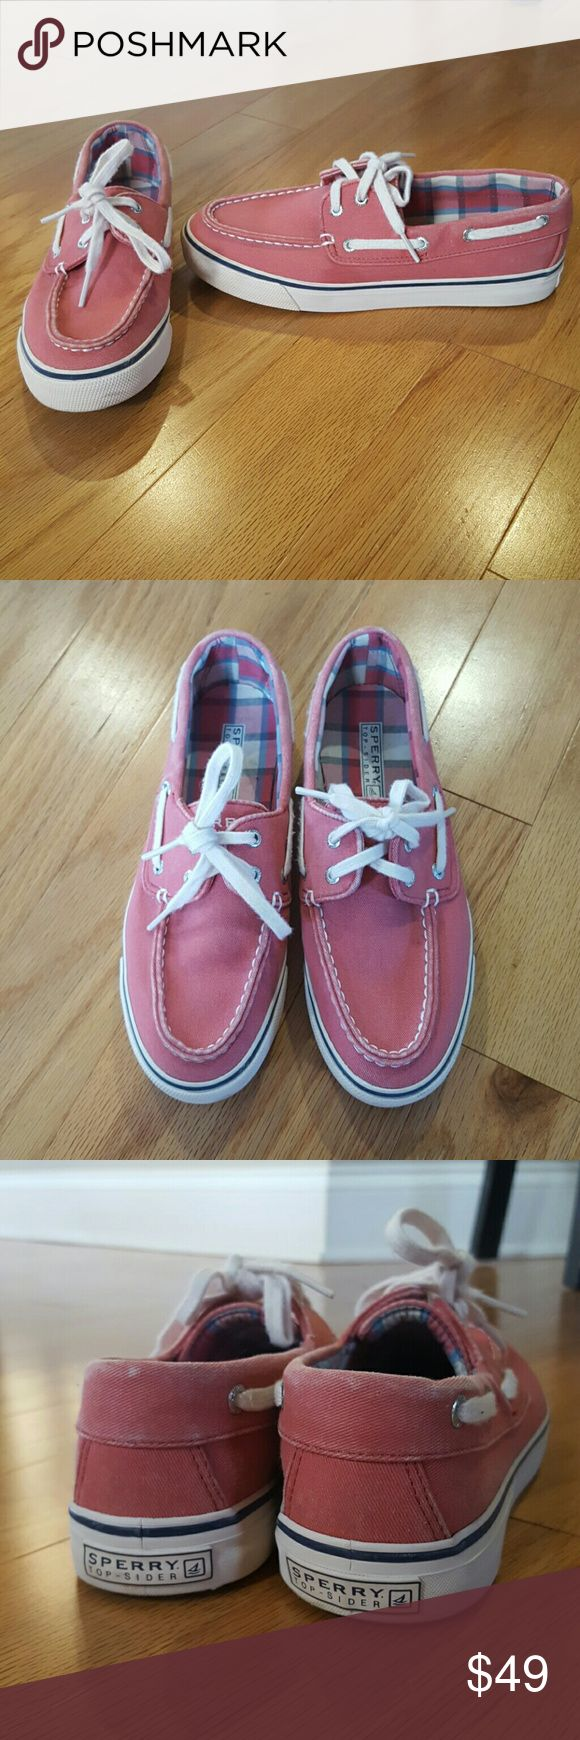 Pink Sperry Top-Sider Shoes Super cute pink shoes from Sperry.  Great used condition and lots of wear left!!  Last two pictures show slight color fade around the top edge of both shoes. Sperry Top-Sider Shoes Flats & Loafers